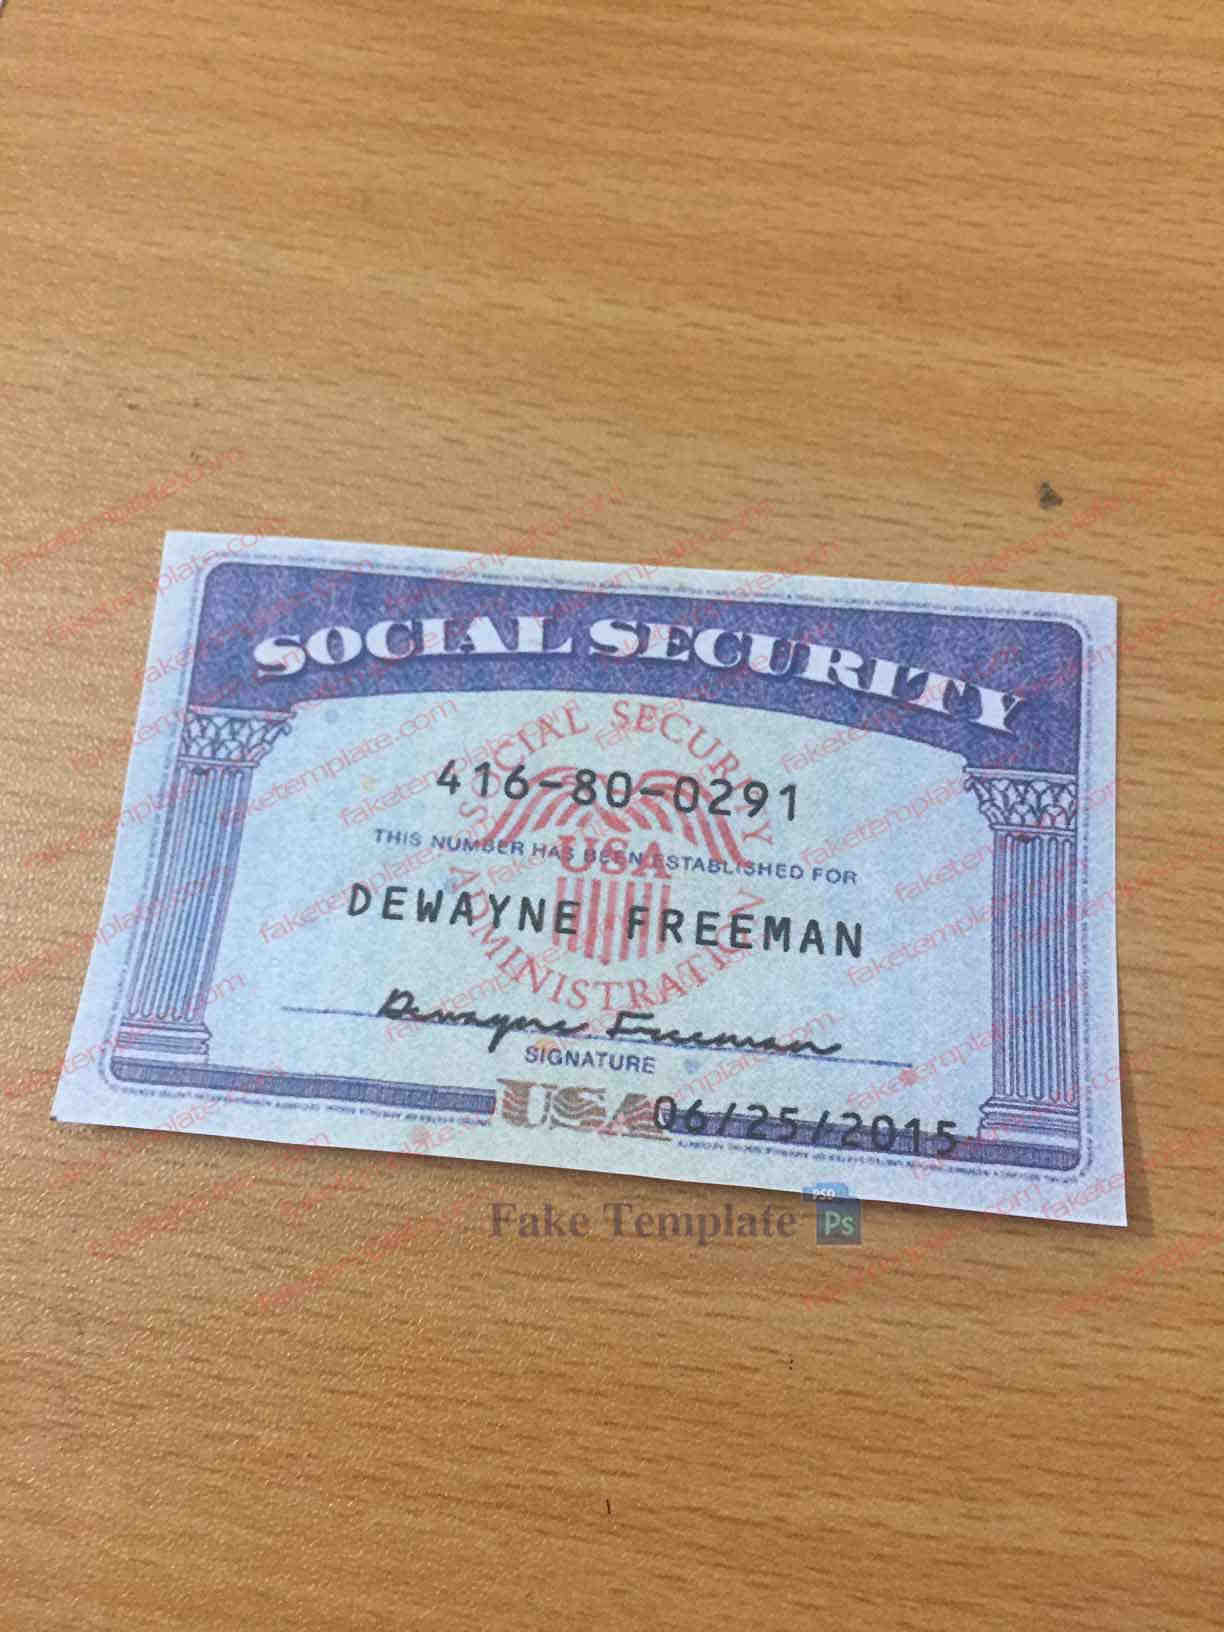 Social Security Number Template Custom Order - High Quality With Regard To Editable Social Security Card Template